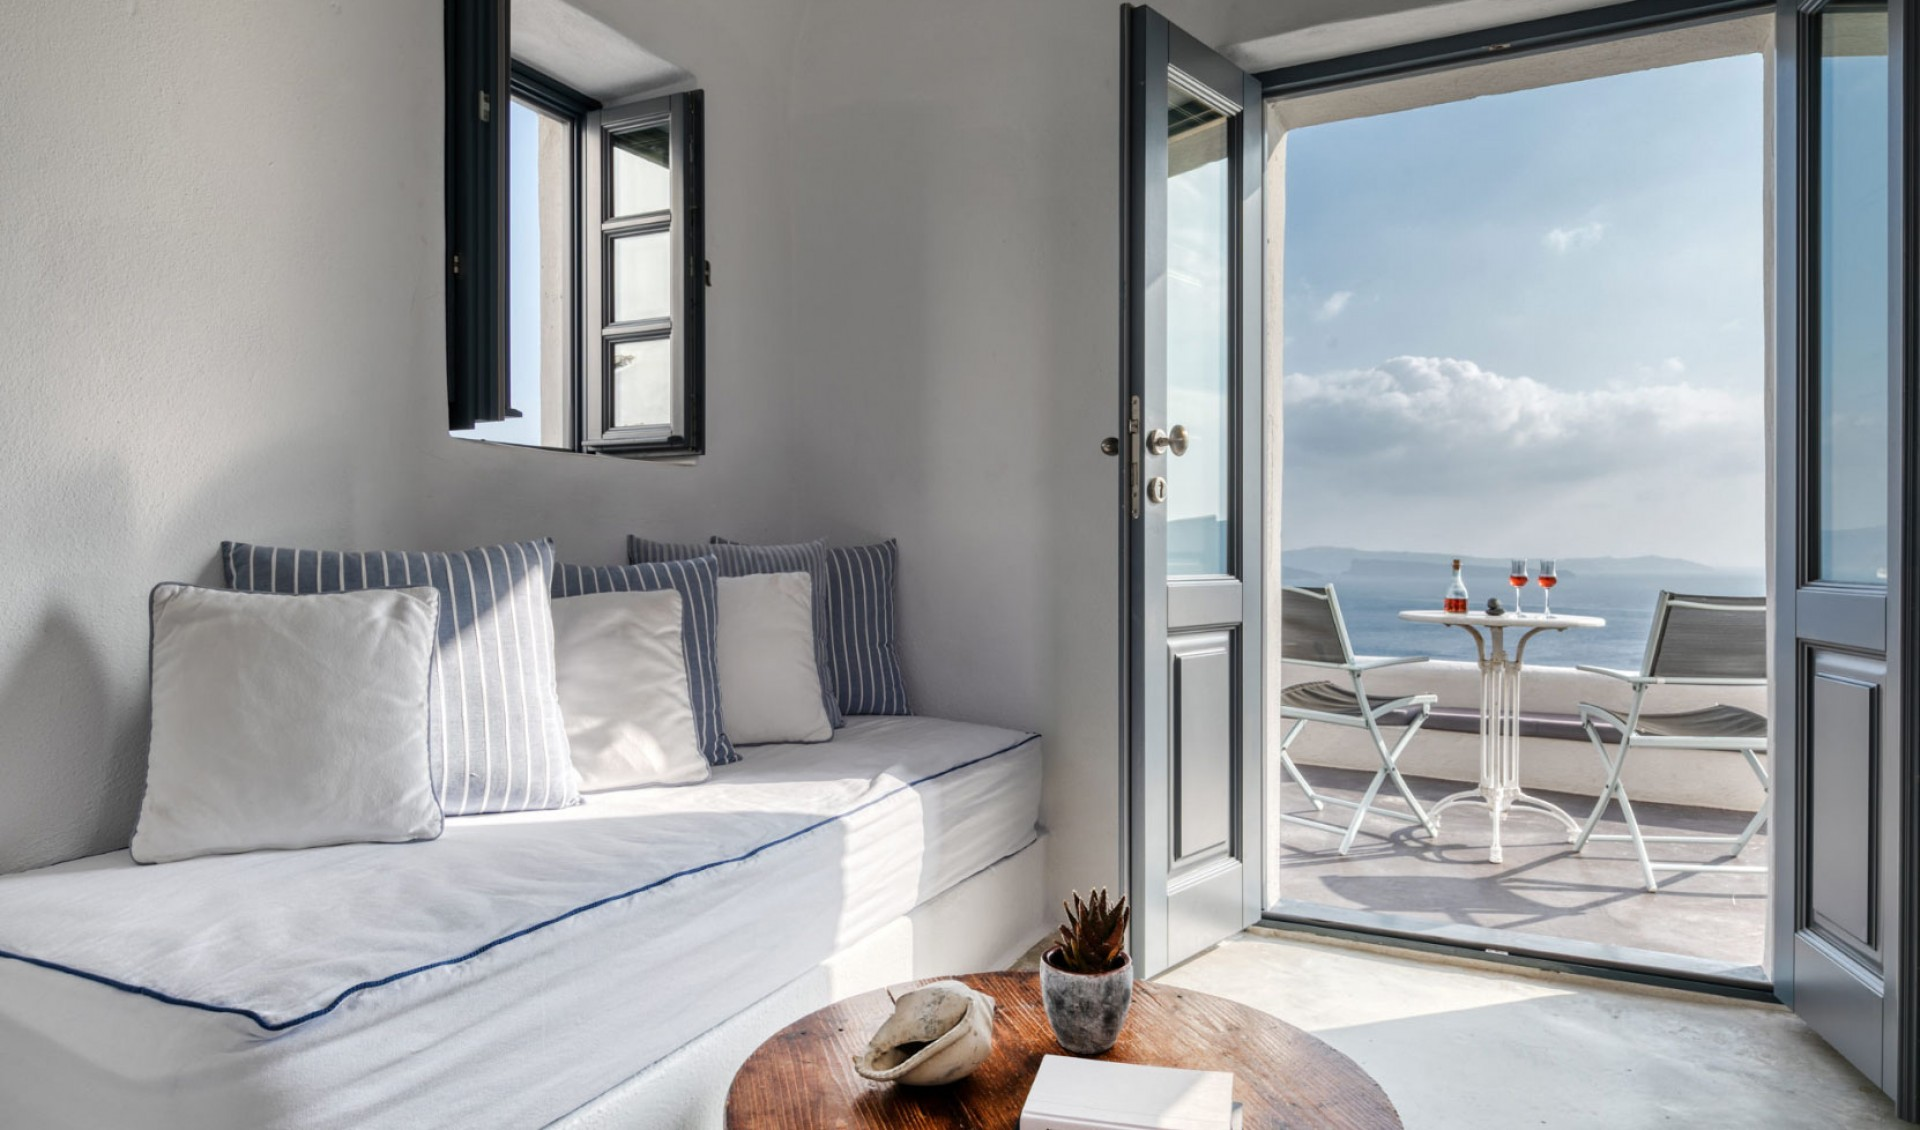 The interior of the luxury suite of Nostos Apartments in Oia Santorini